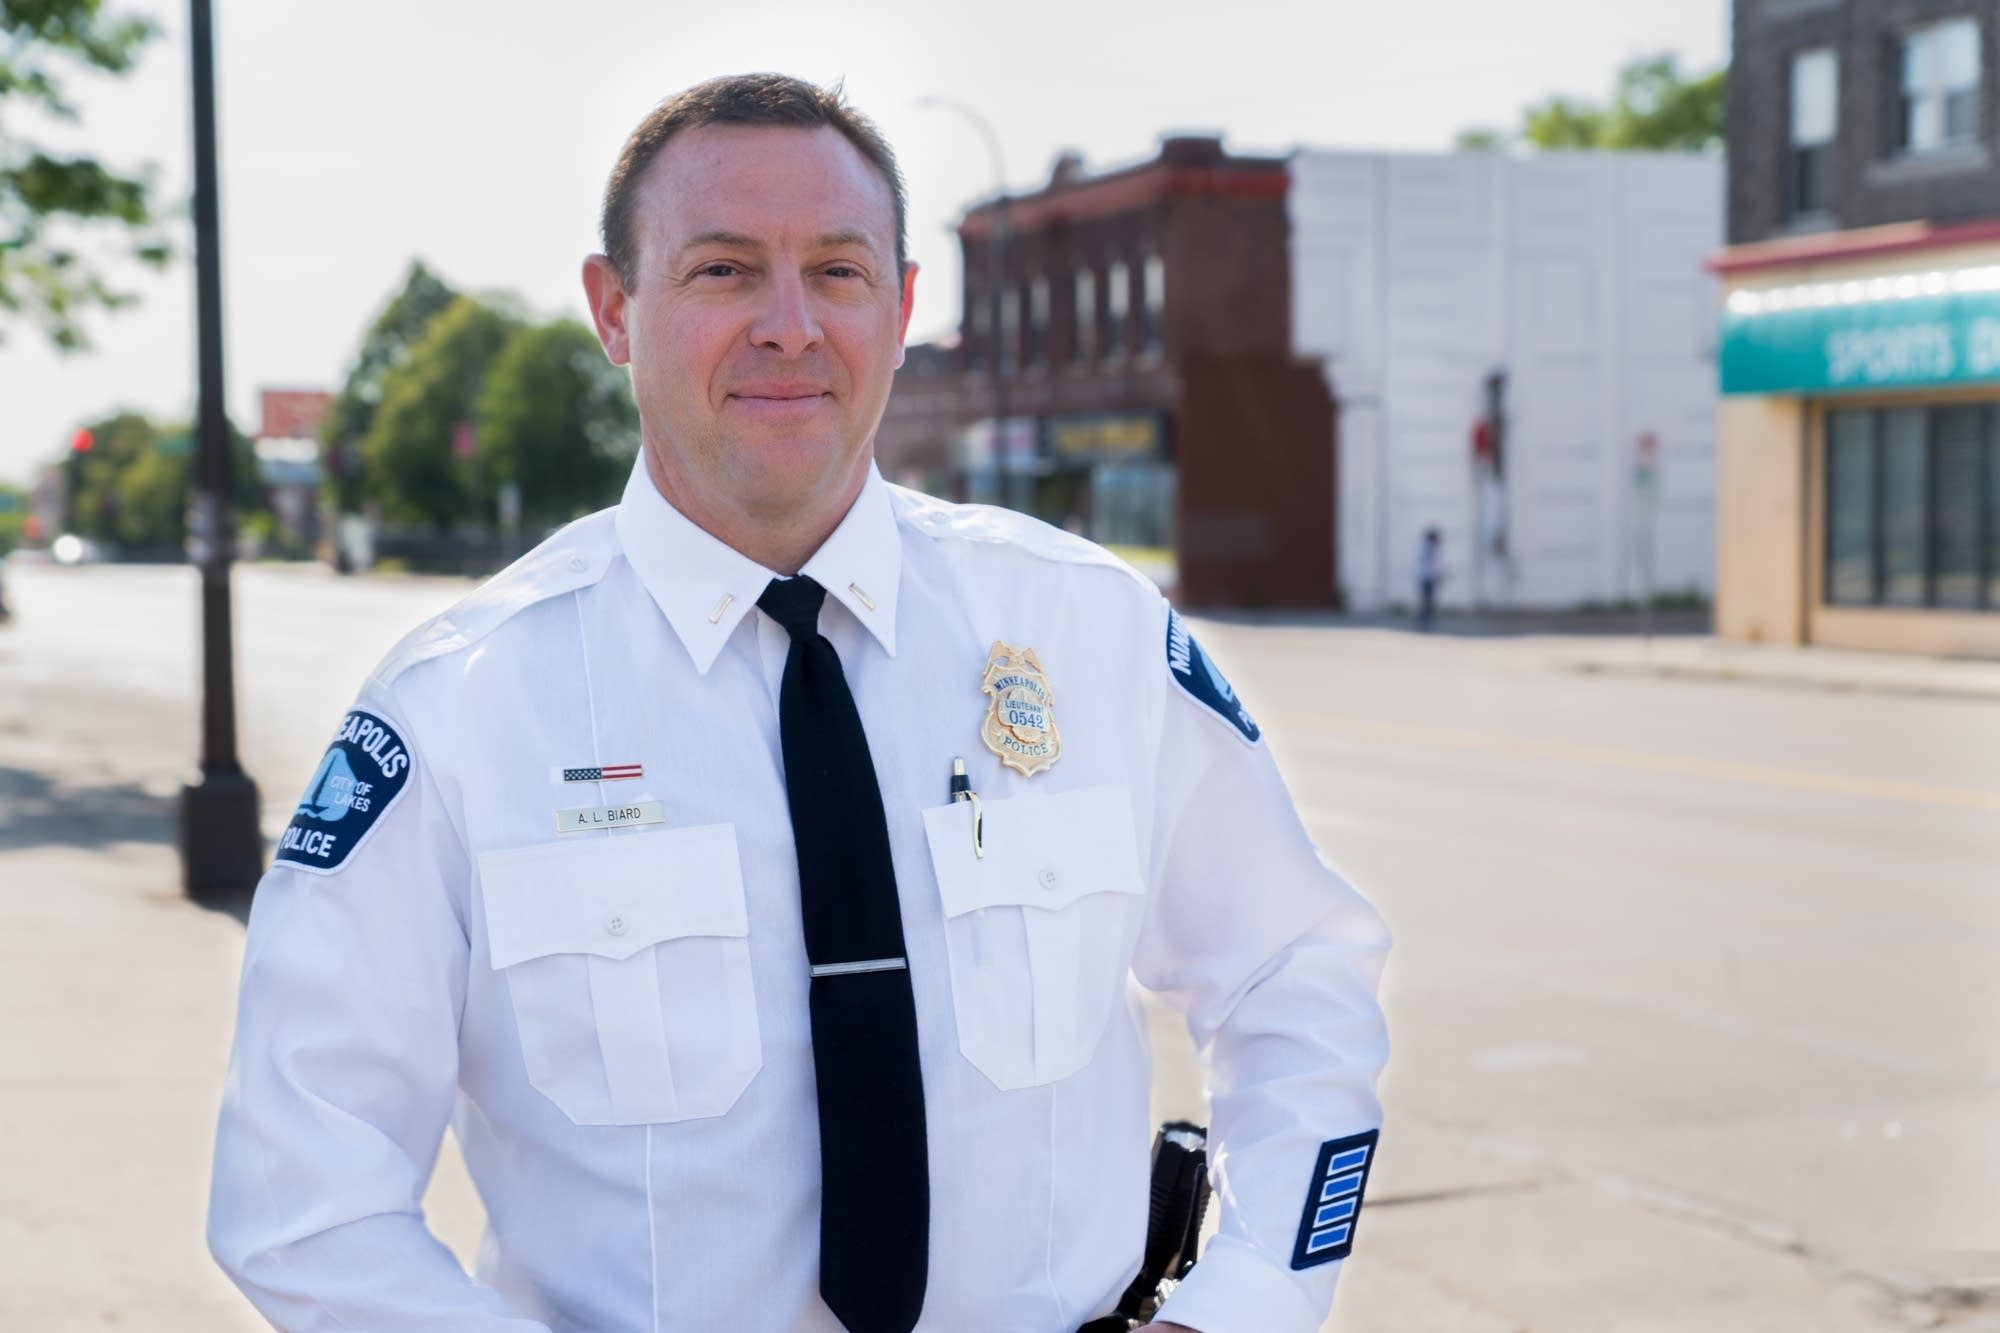 Former Chief Harteau appointed Biard as the new 4th Precinct Inspector.